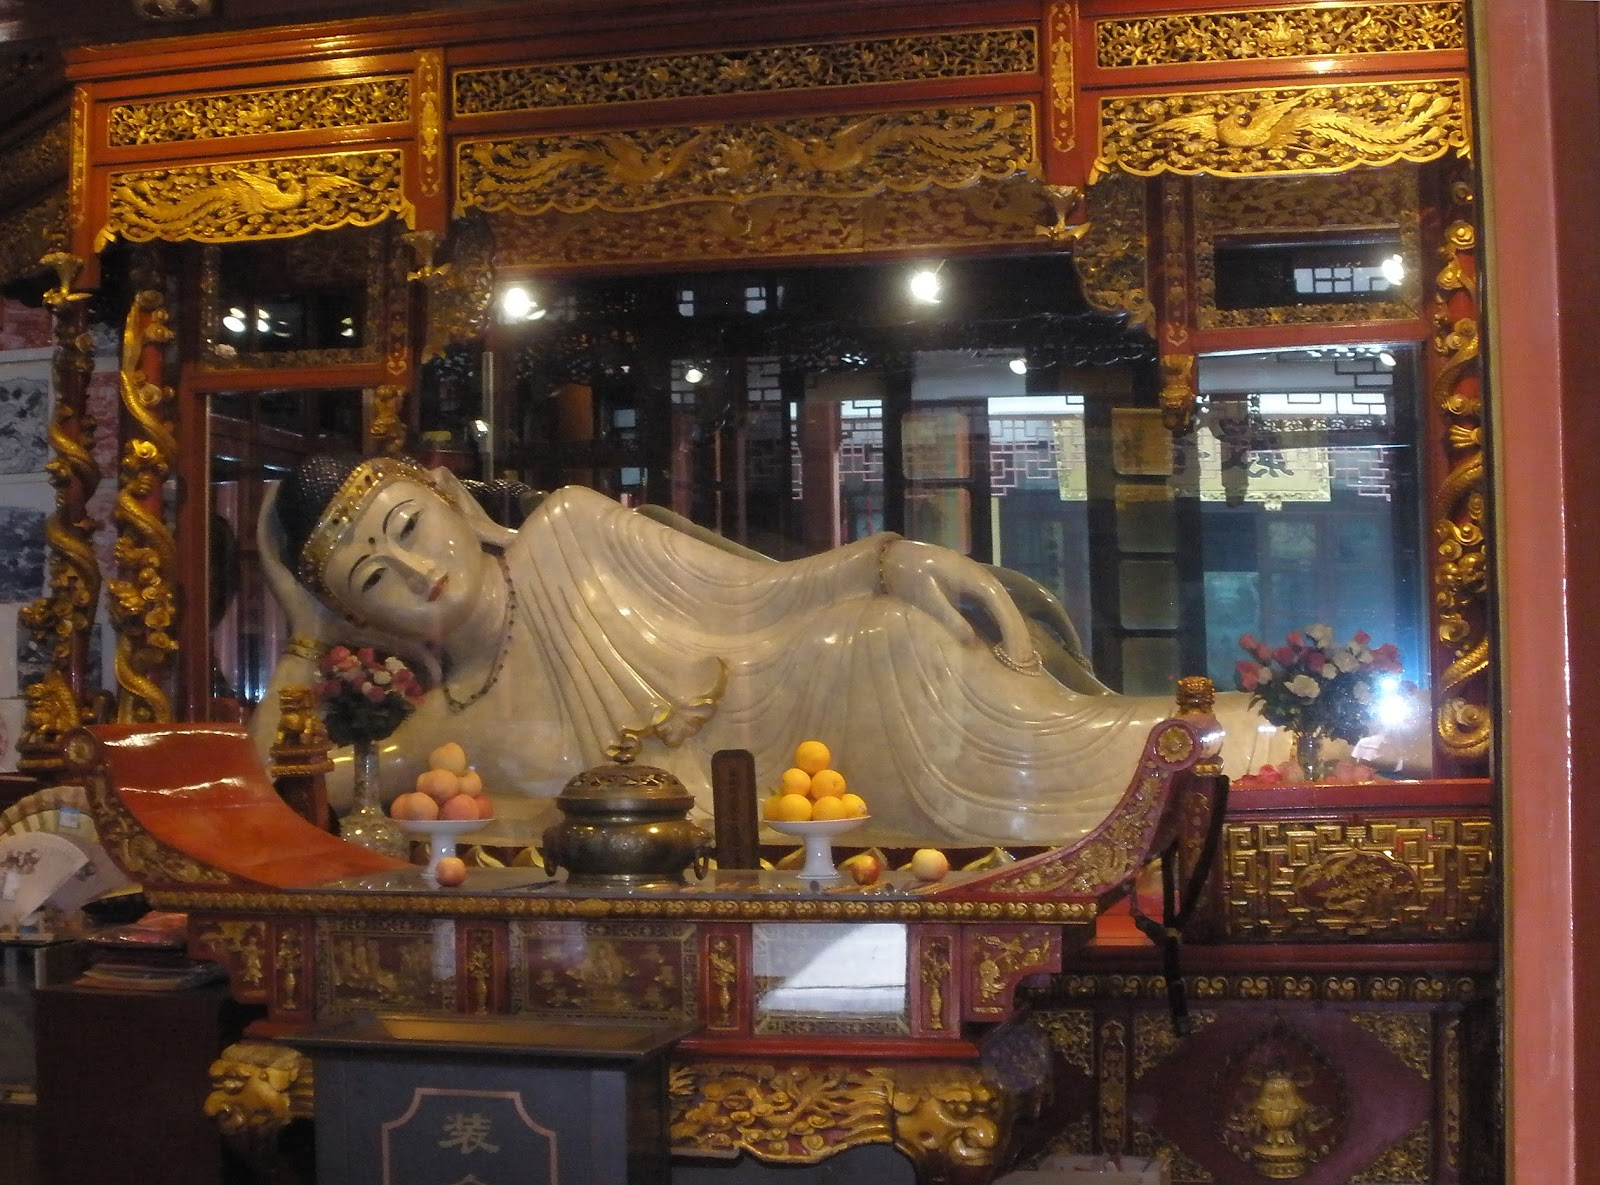 Jax Stumpes: Labour Day Weekend: Jade Buddha Temple & Sheshan Cathedral (5/1-2/2011)